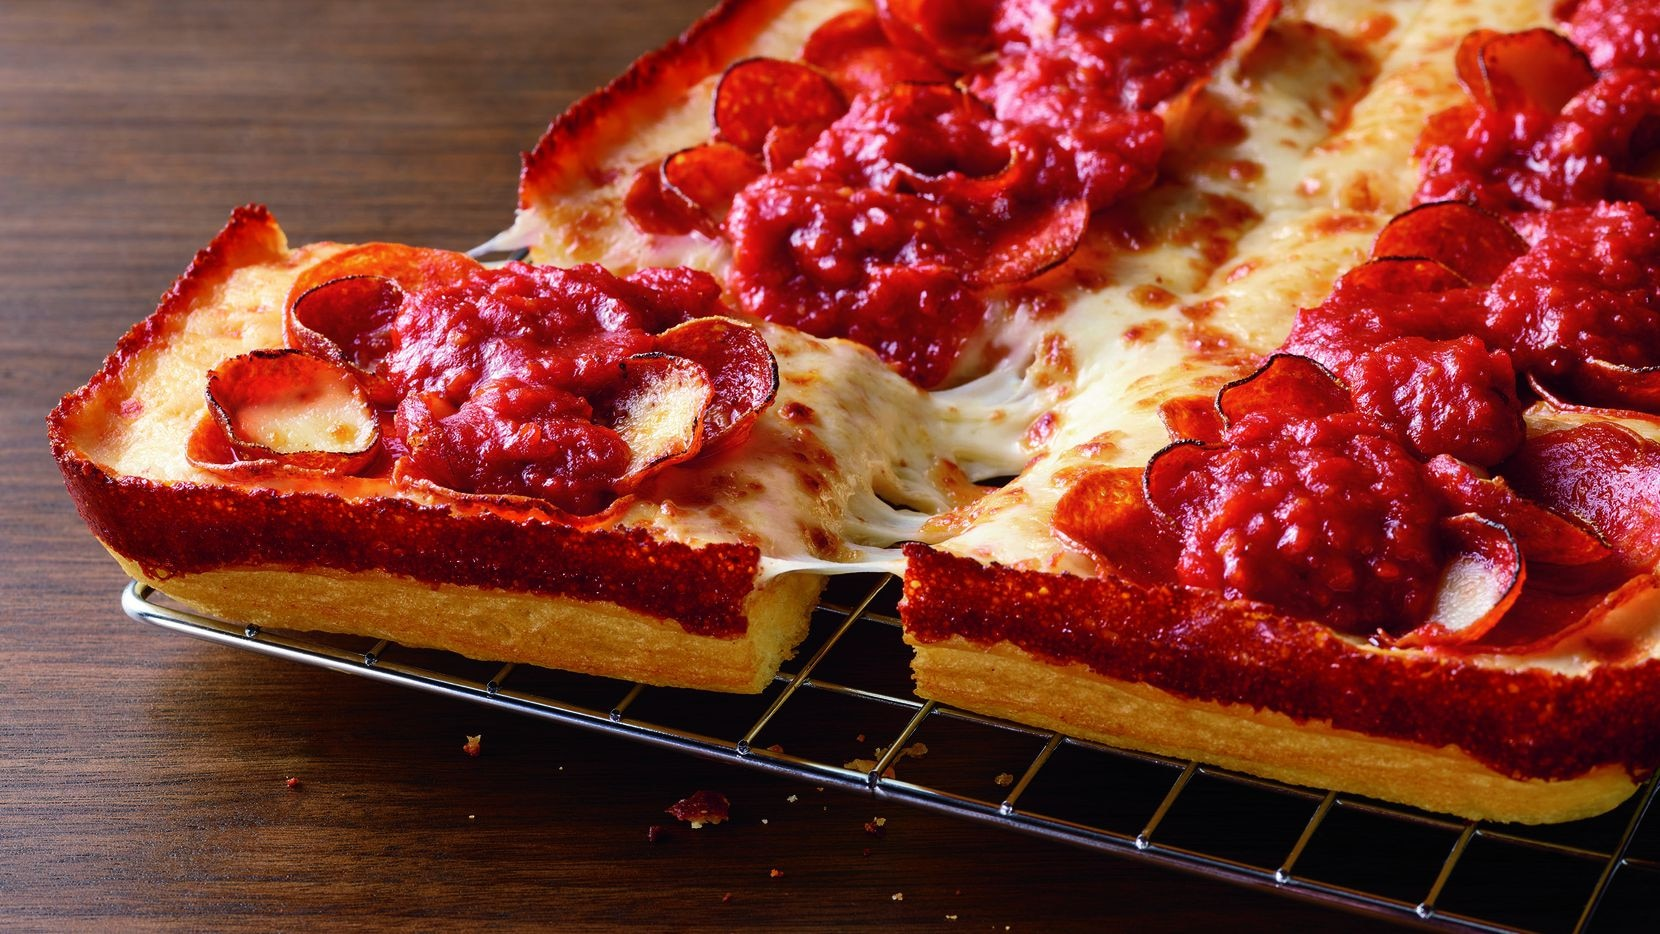 Detroit-style pizza skyrocketed in popularity across Dallas-Fort Worth in 2020. On Jan. 26, 2021, Plano-based Pizza Hut announced it is selling four Detroit-style pizzas via delivery, carryout and curbside pickup across the United States, including in the company's home state of Texas.